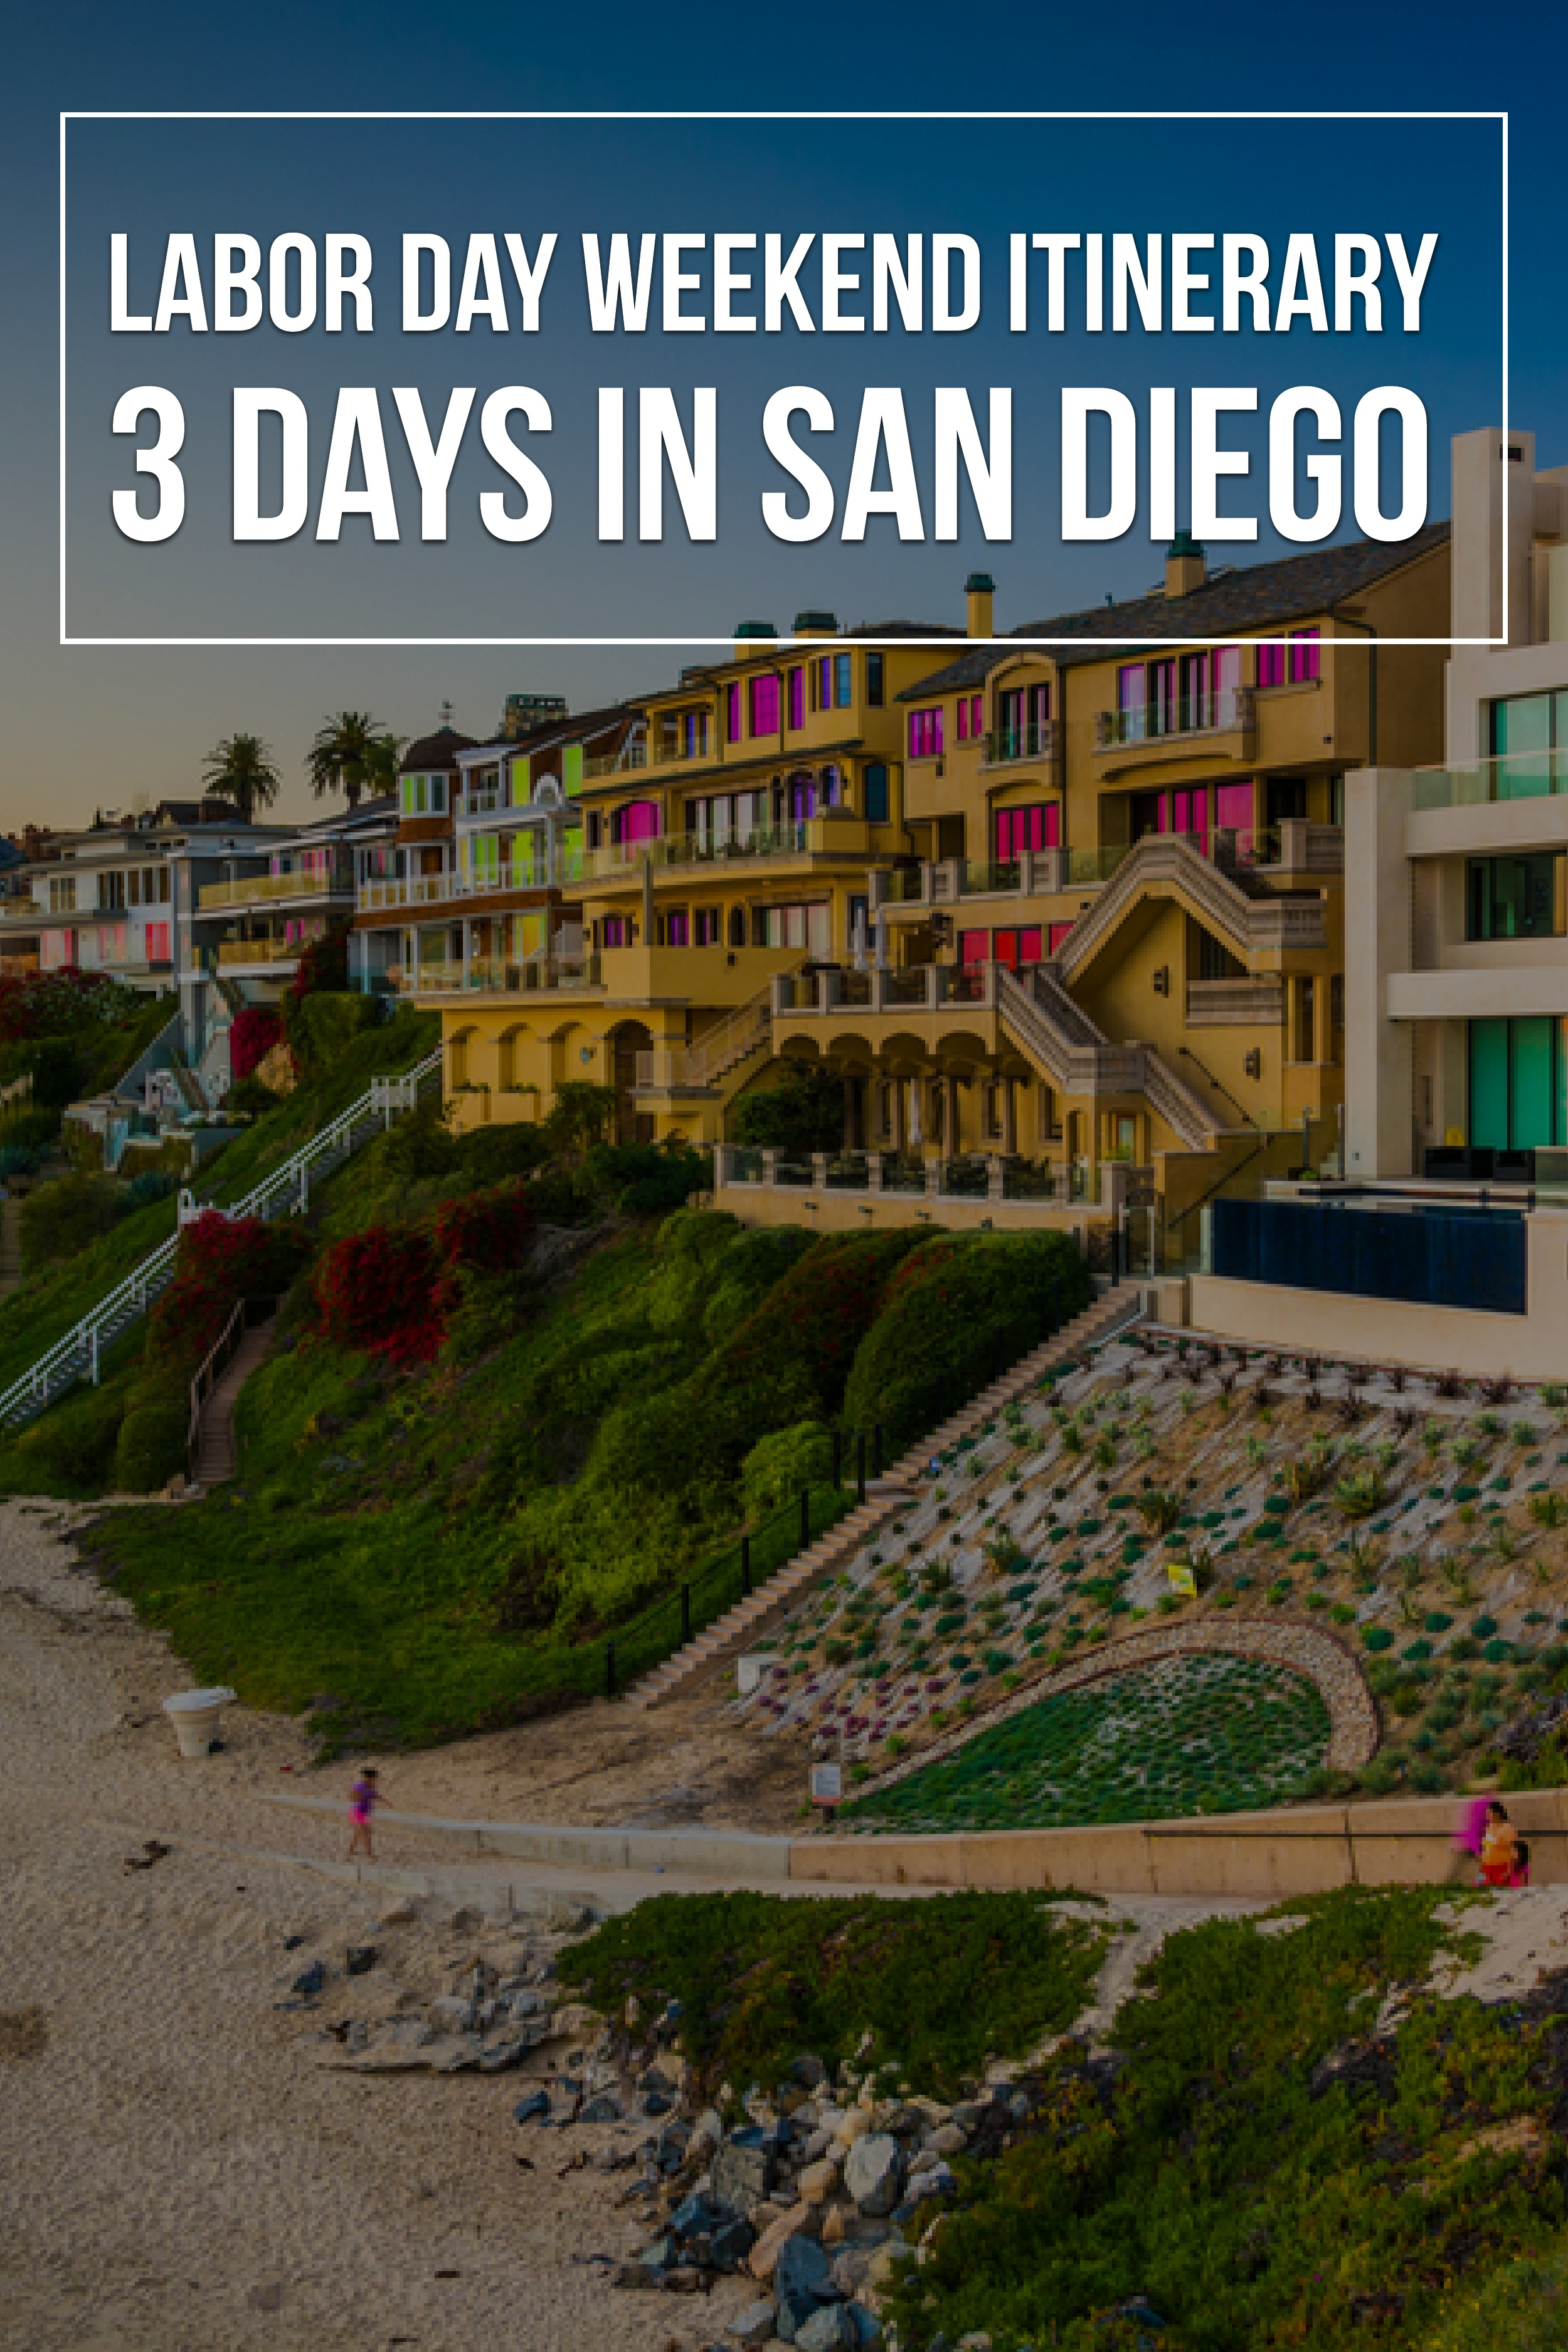 Labor Day Events and Things to Do in San Diego, CA